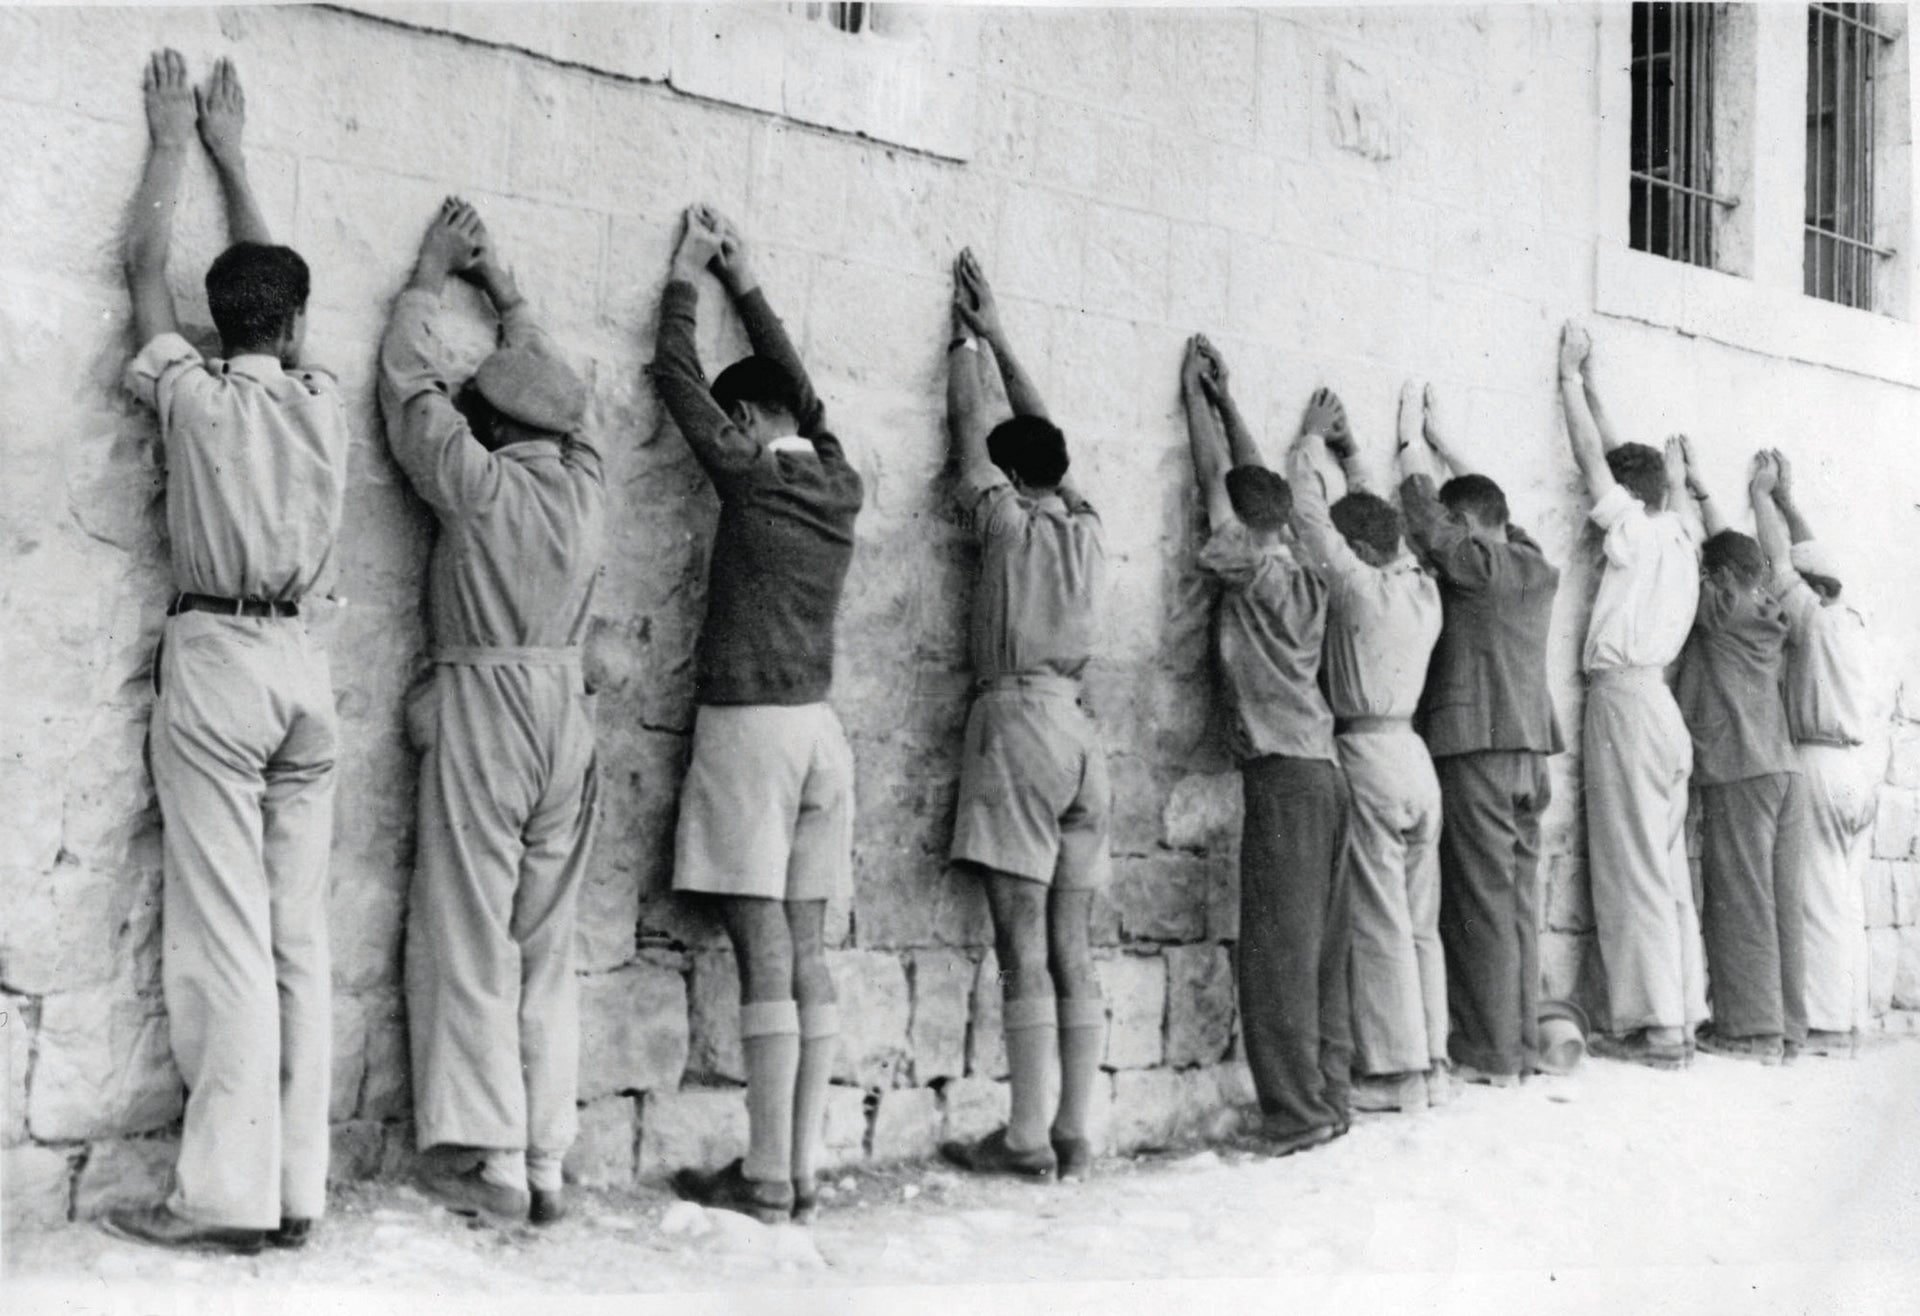 Jewish men are detained by British forces, 1947/1948